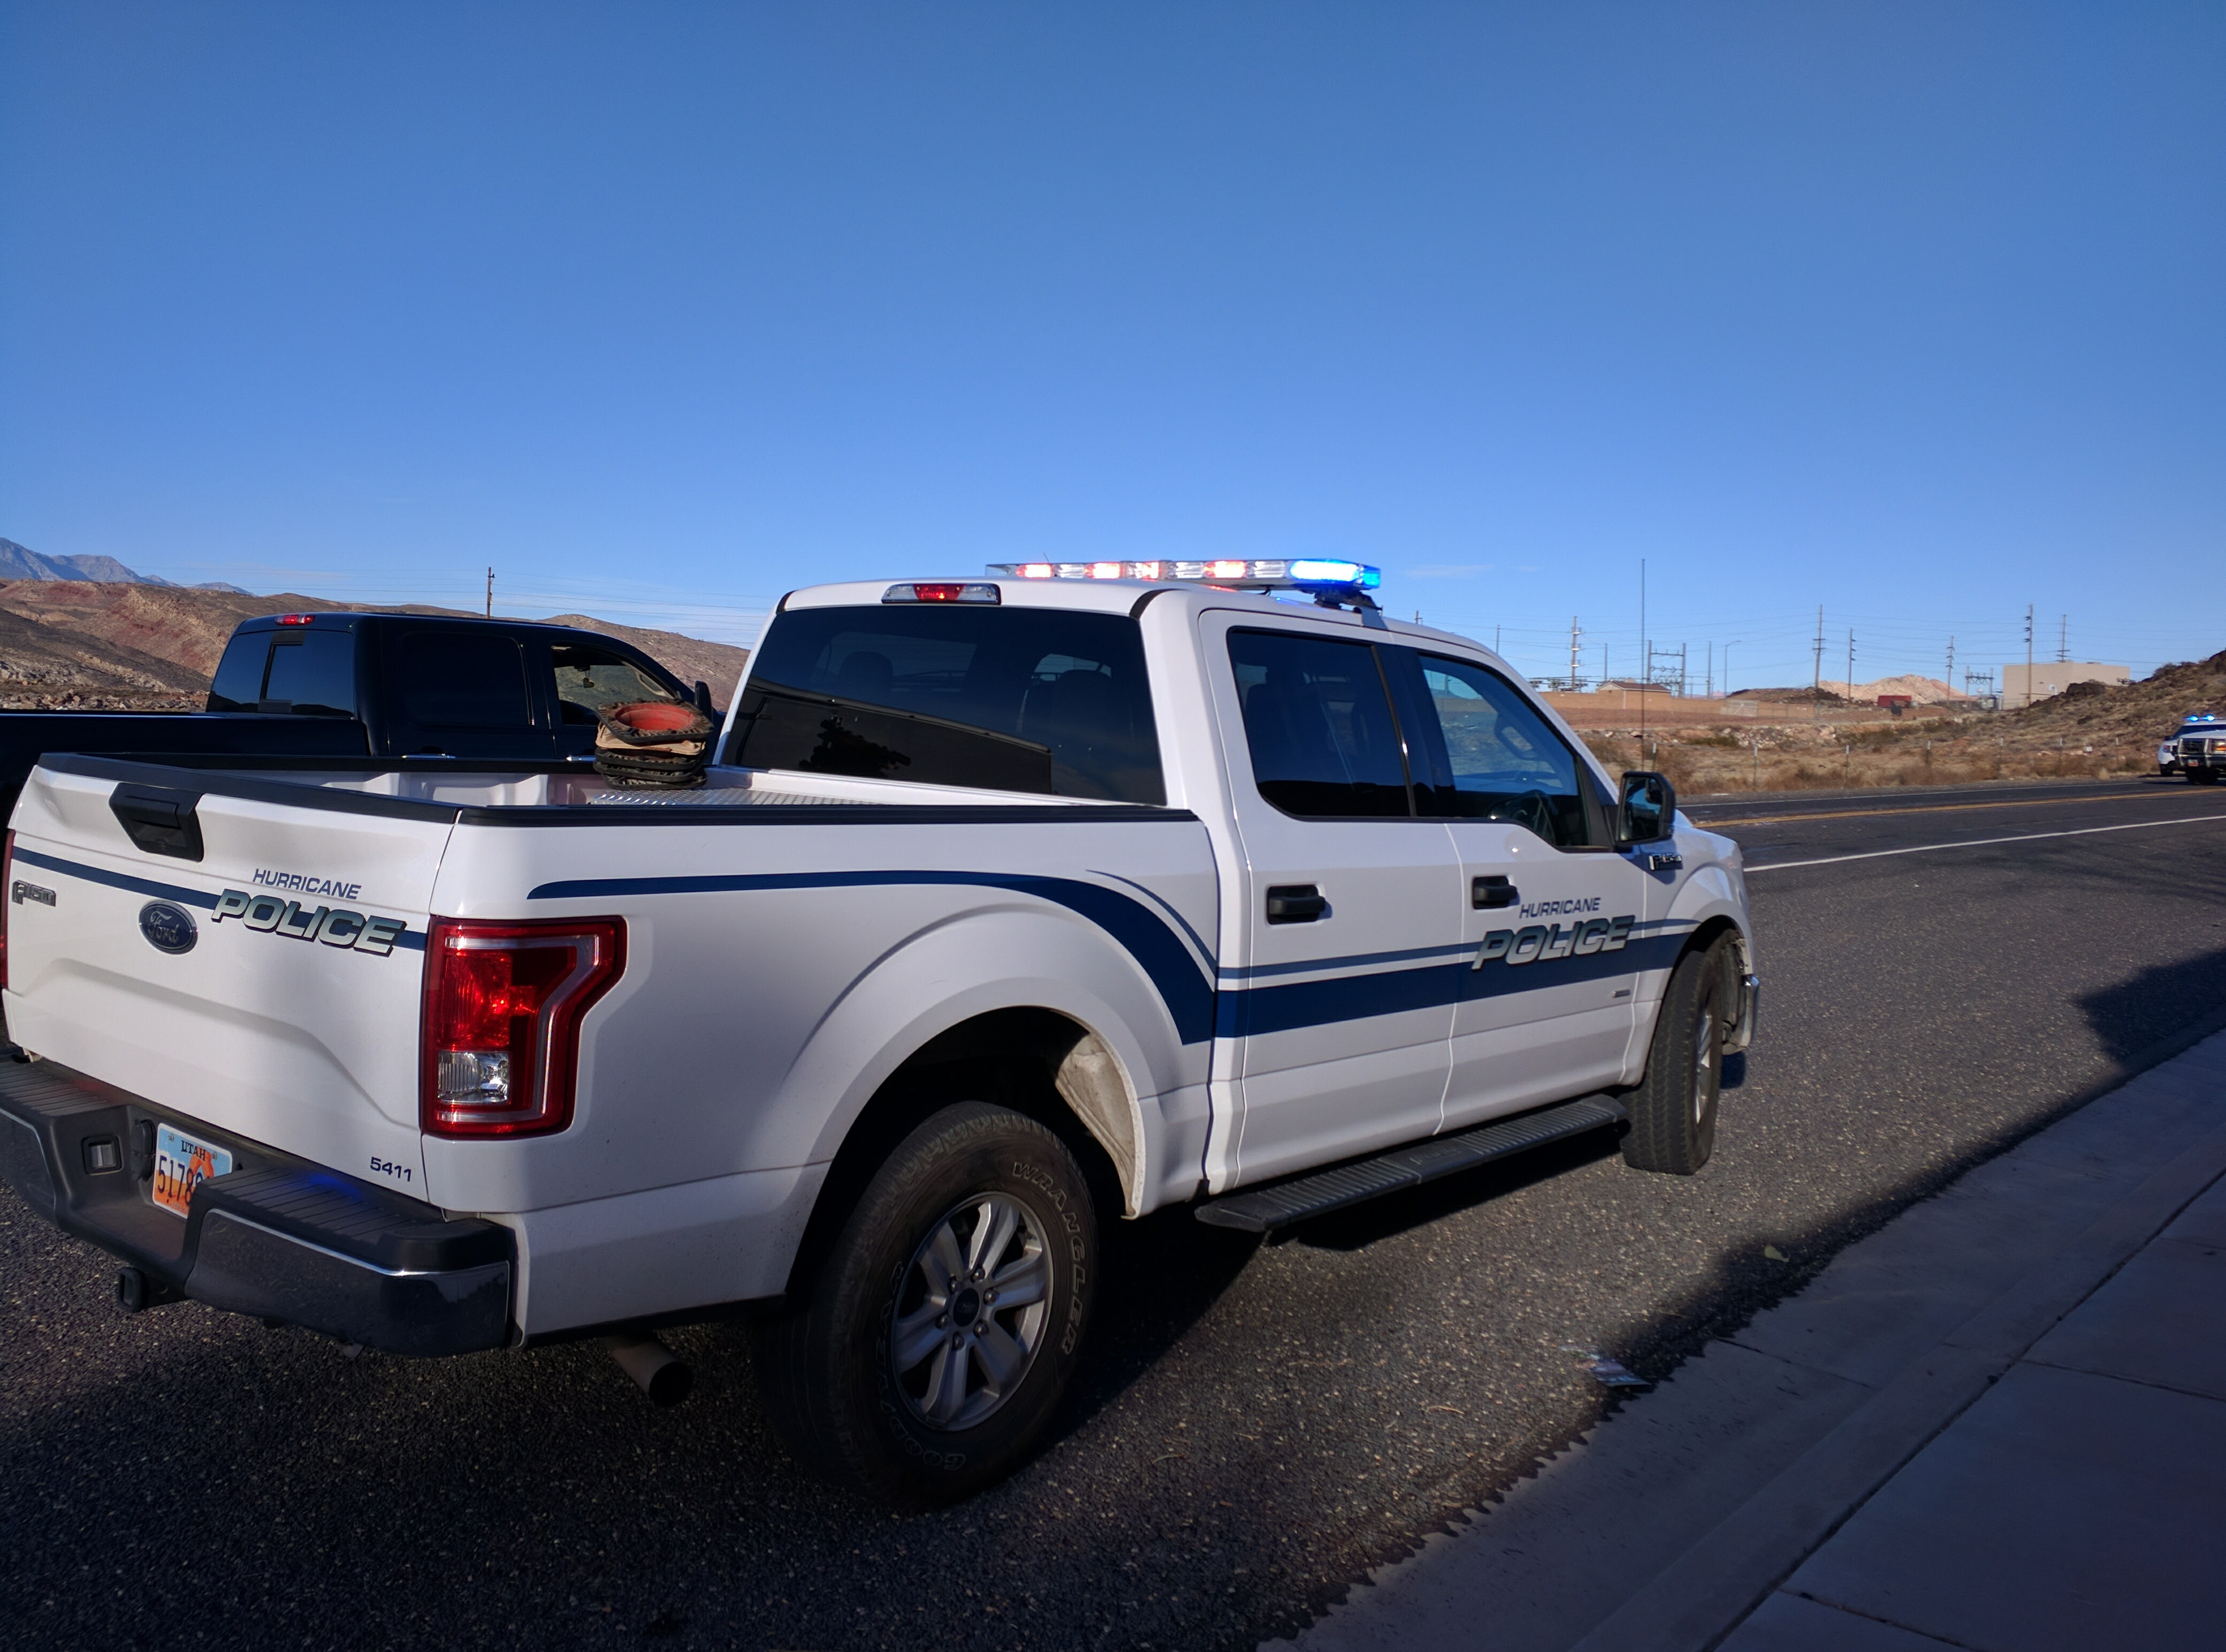 A Hurricane Police unit responds to the scene of a two-car crash on 600 North, Hurricane, Utah, Dec. 9, 2016 | Photo by Joseph Witham, St. George News